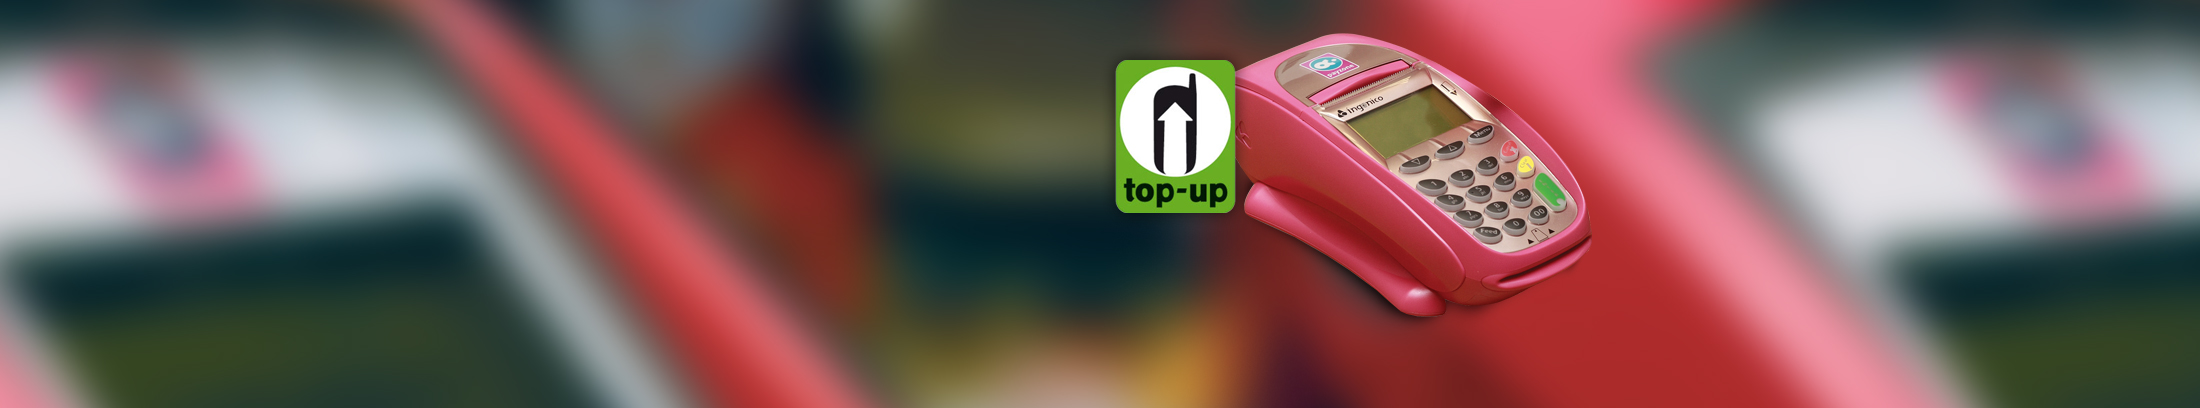 etop-up